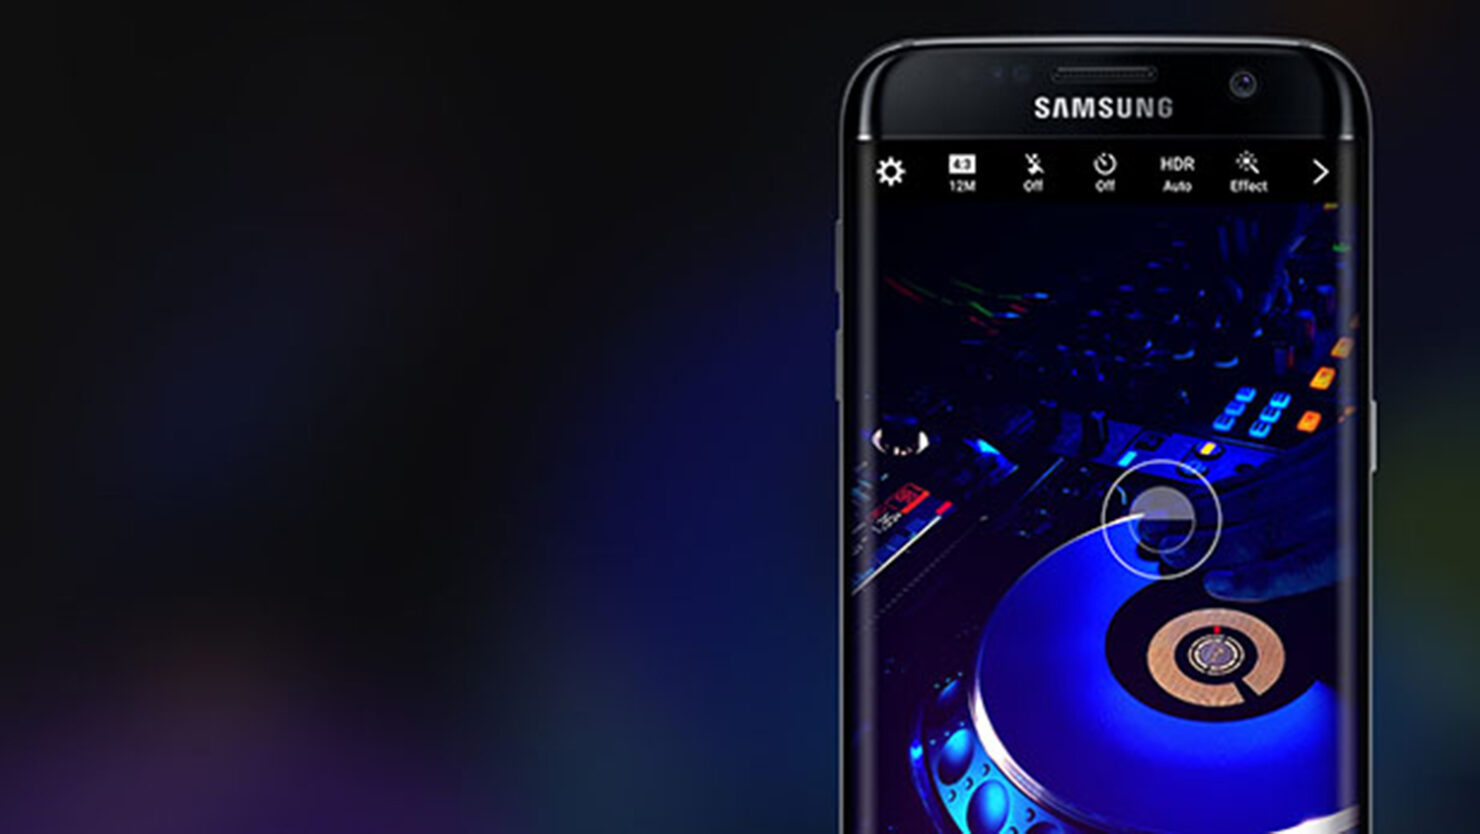 Galaxy S8 QHD panel new material improved build